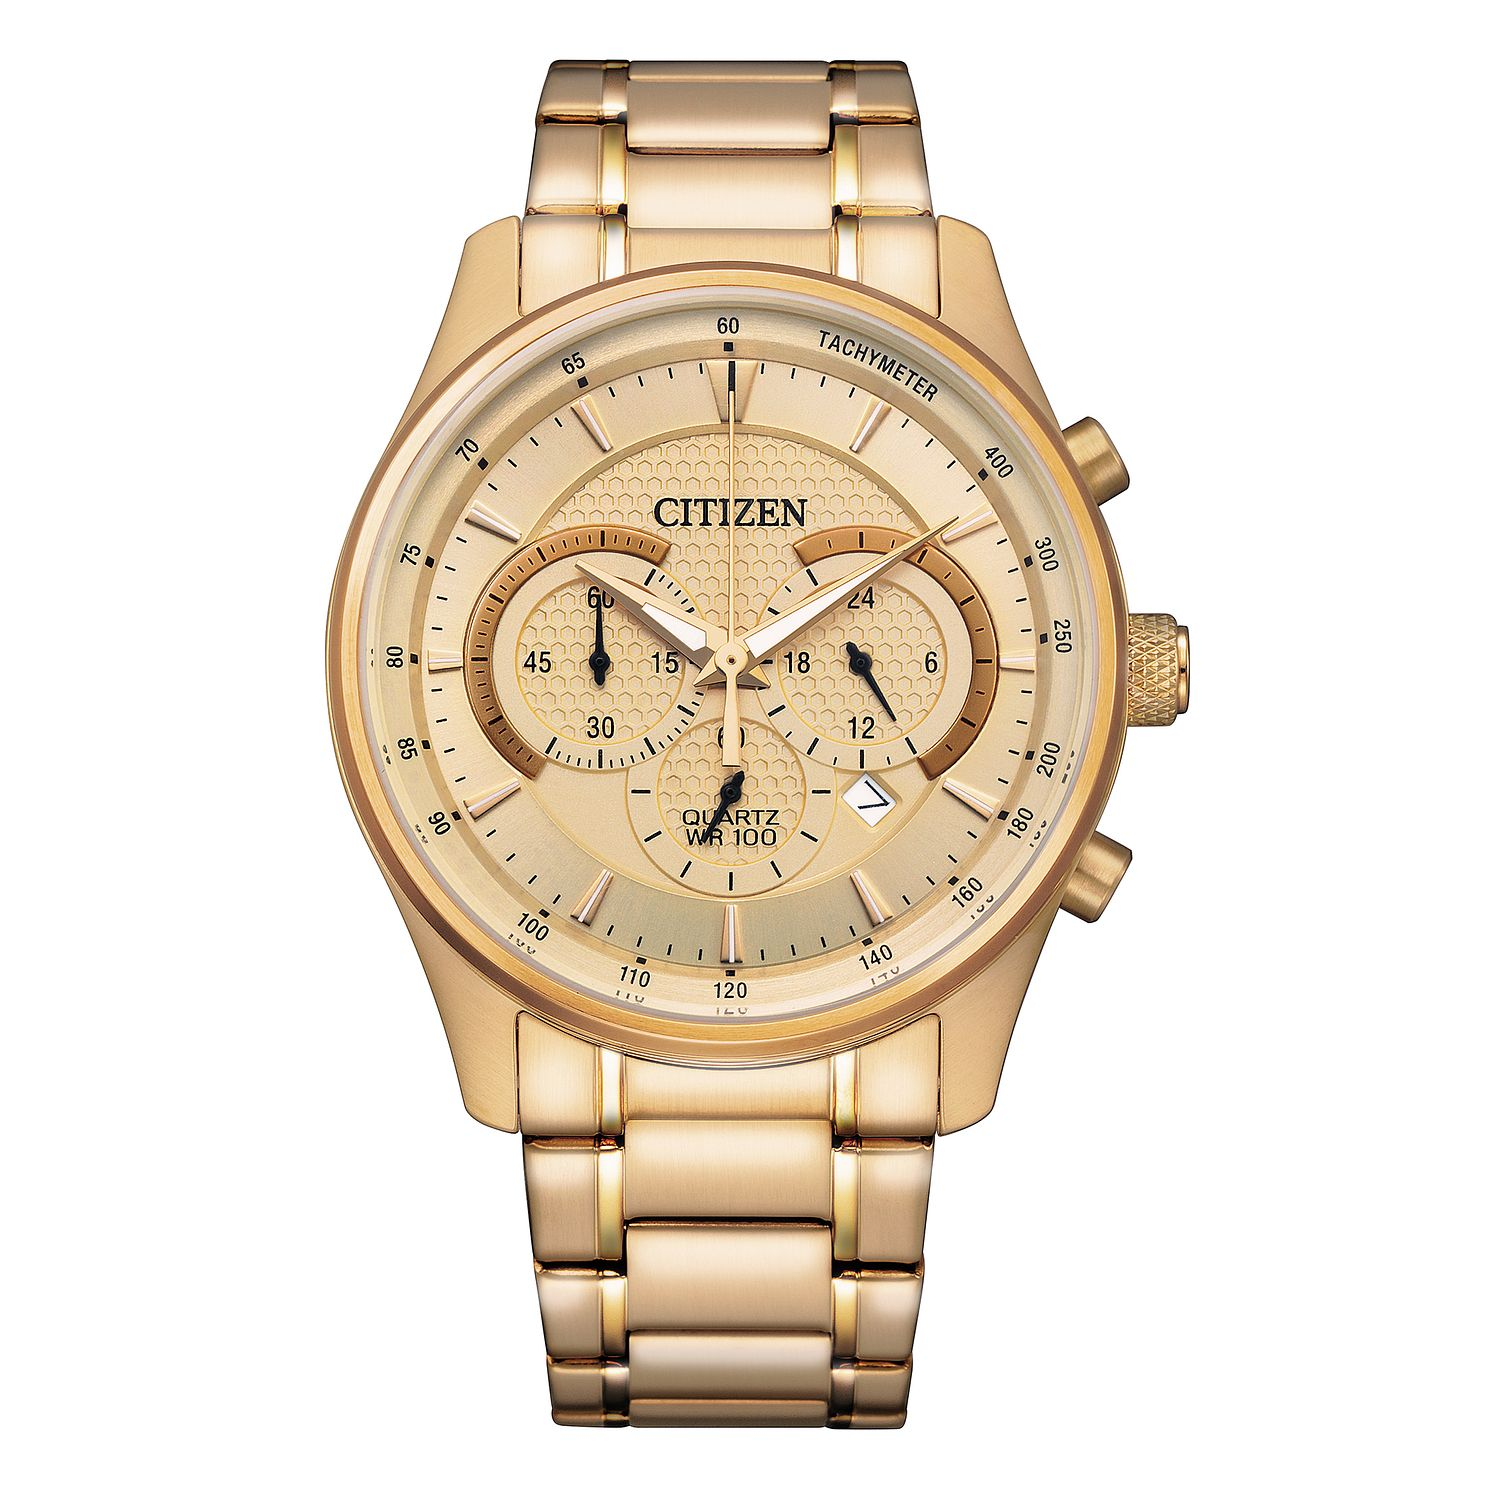 Citizen Chronograph Men's Yellow Gold Tone Bracelet Watch - Product number 1016830